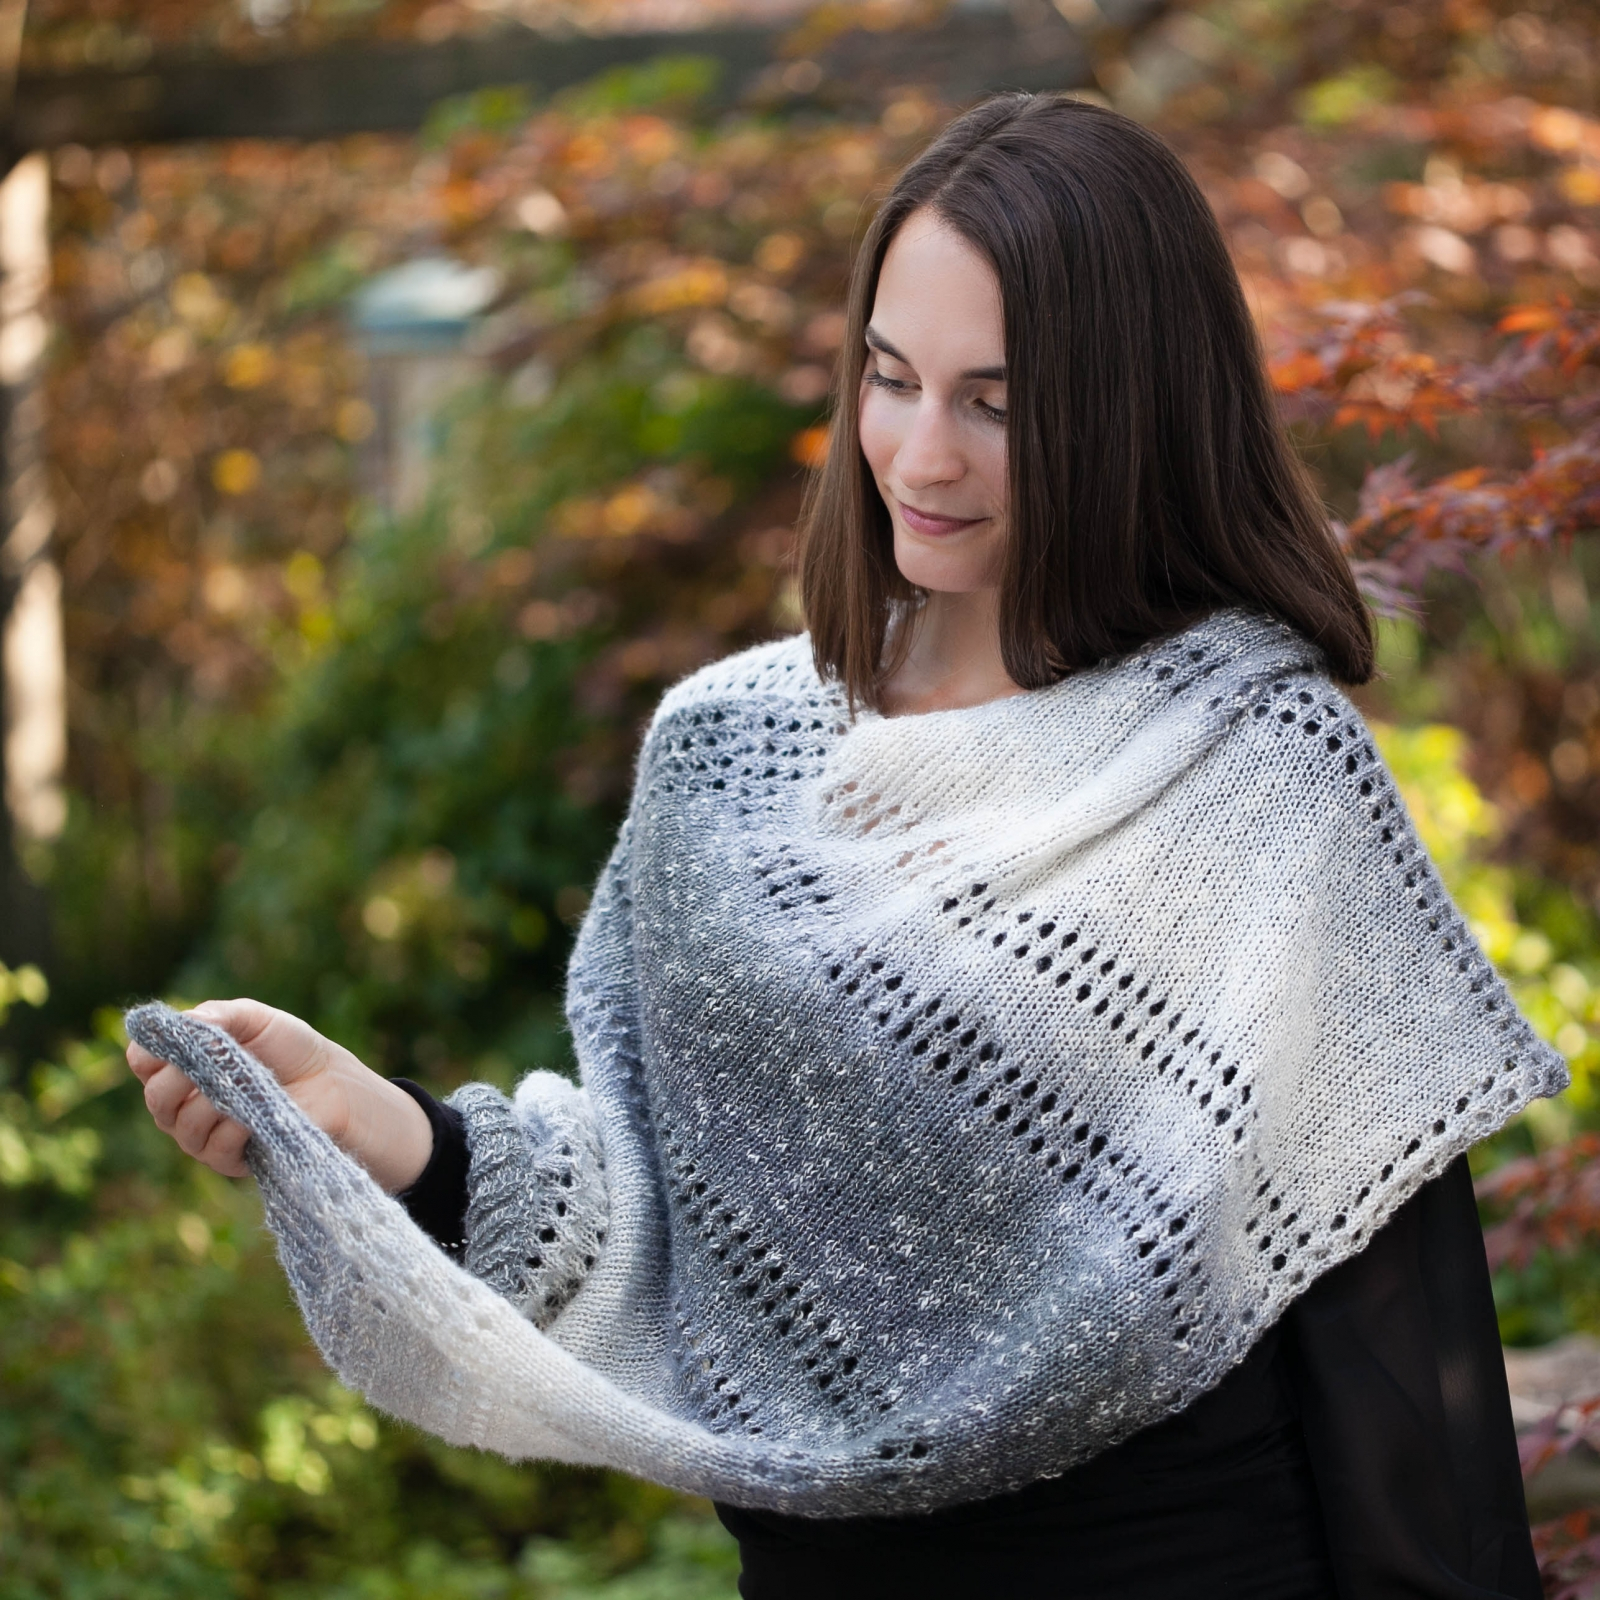 Poncho Pattern Knit Loom Knit Poncho Cape Pattern The Grey Skies Poncho Has An Elegant Design And Is An Easy Loom Knit Pdf Pattern Download